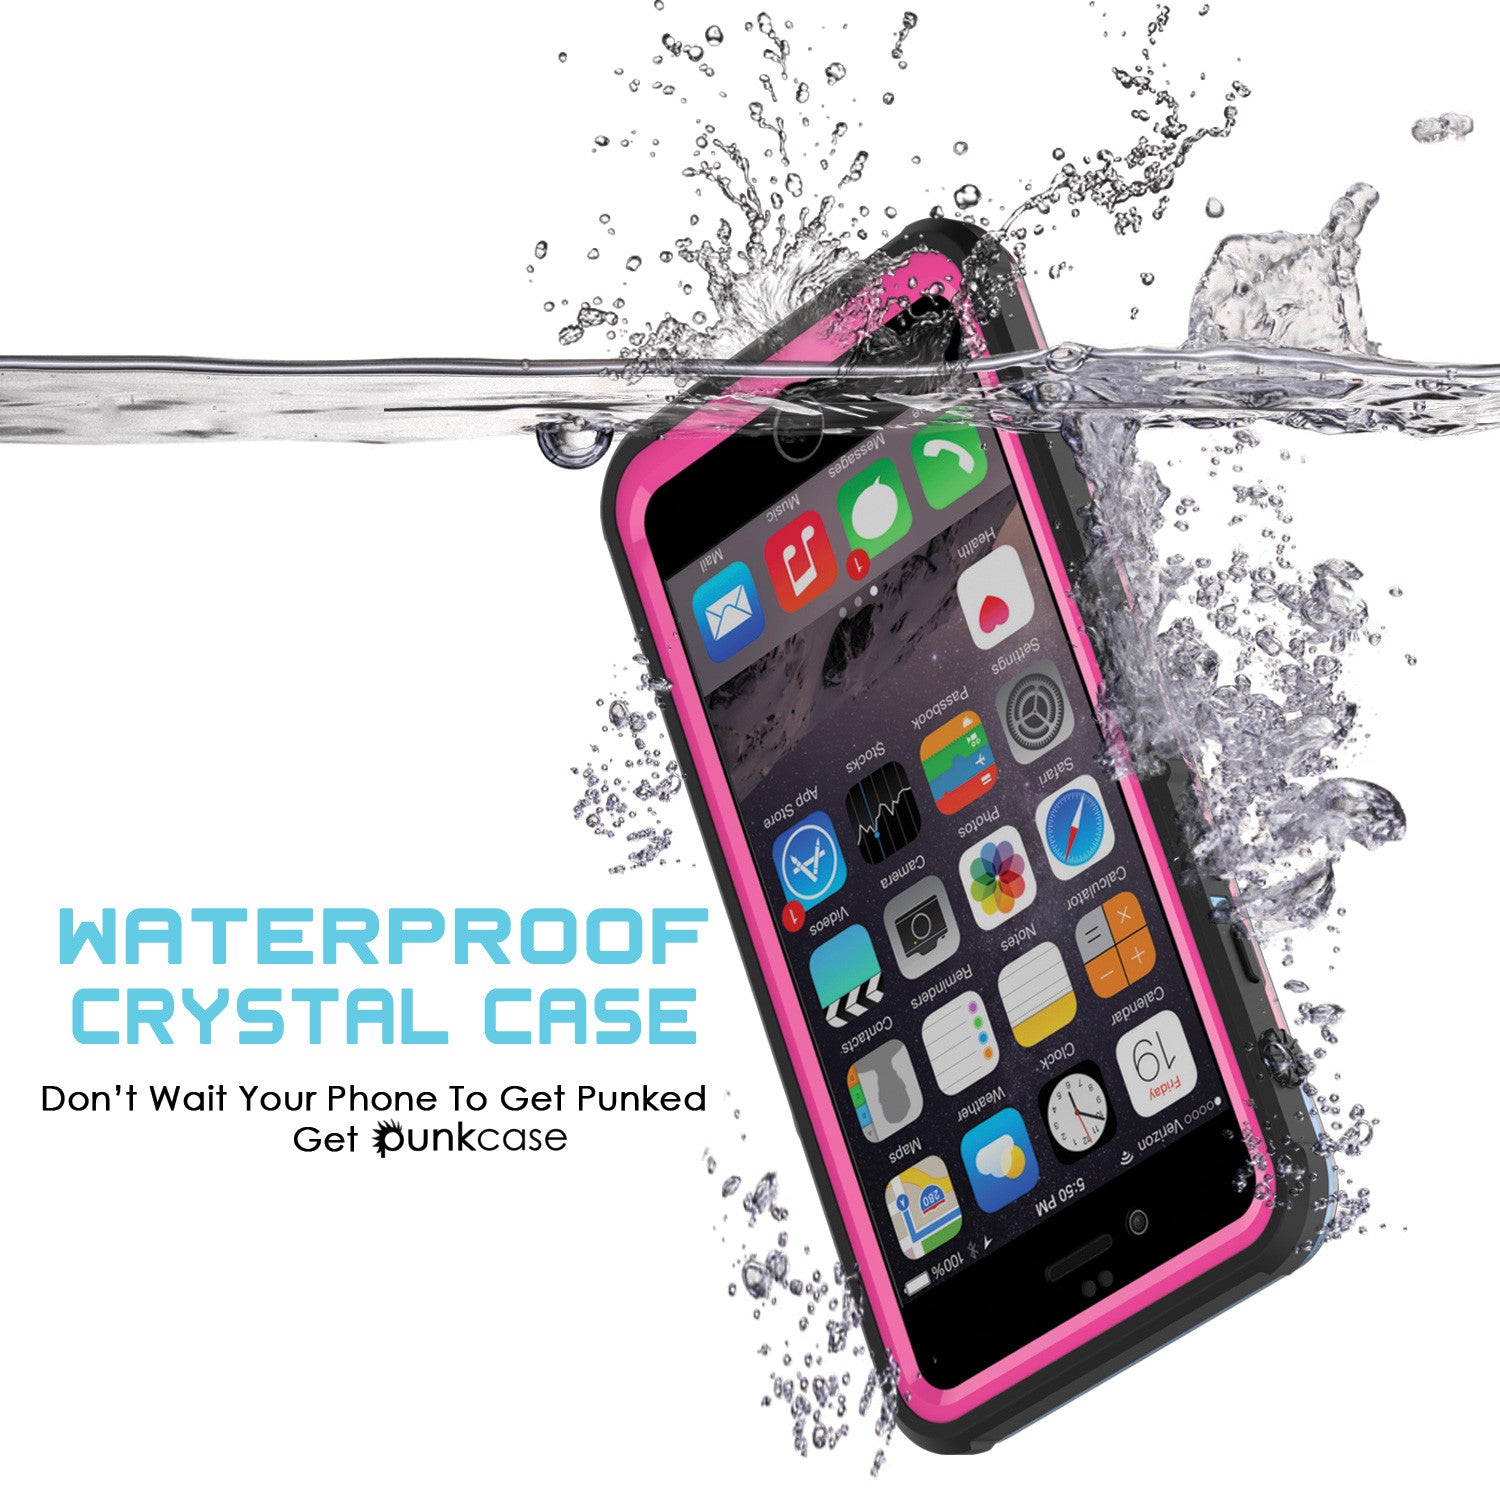 iPhone 6/6S Waterproof Case, PUNKcase CRYSTAL Pink W/ Attached Screen Protector  | Warranty